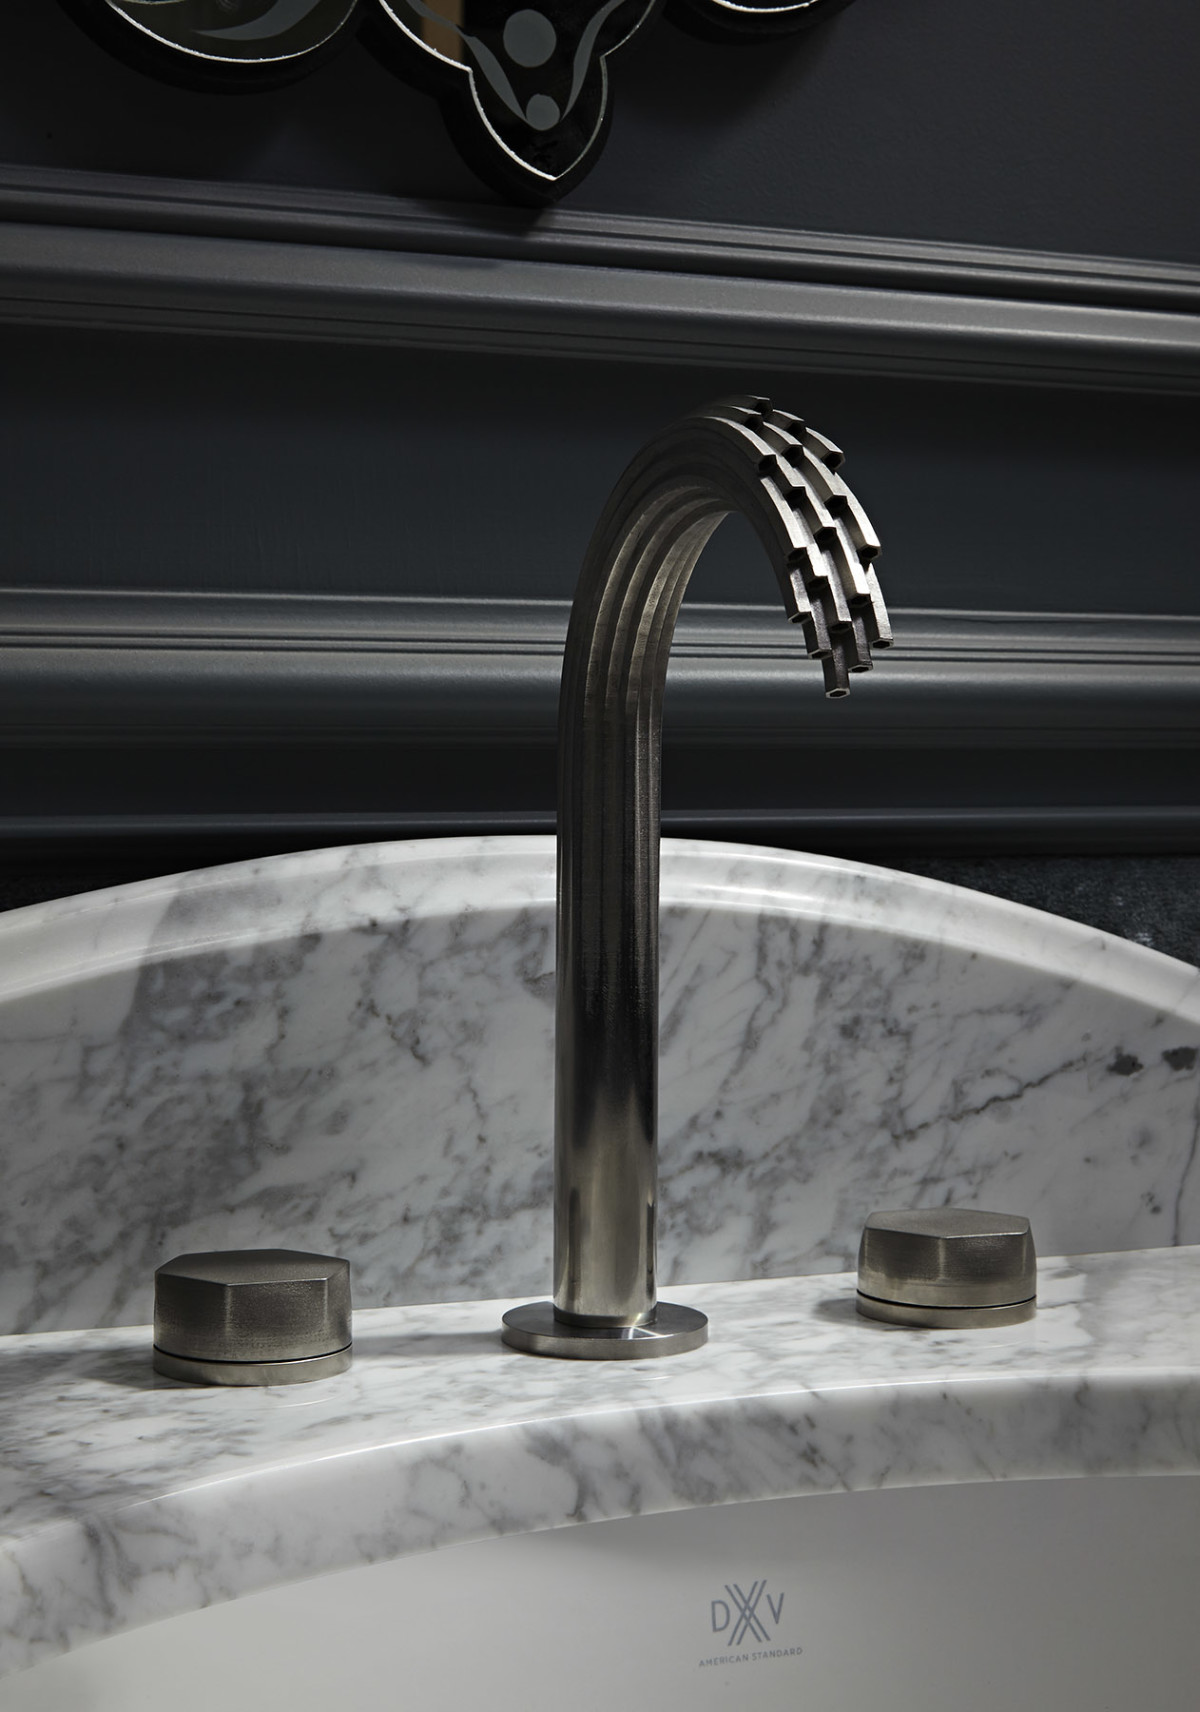 3D Printed Faucets from DXV by American Standard - Fine Homebuilding